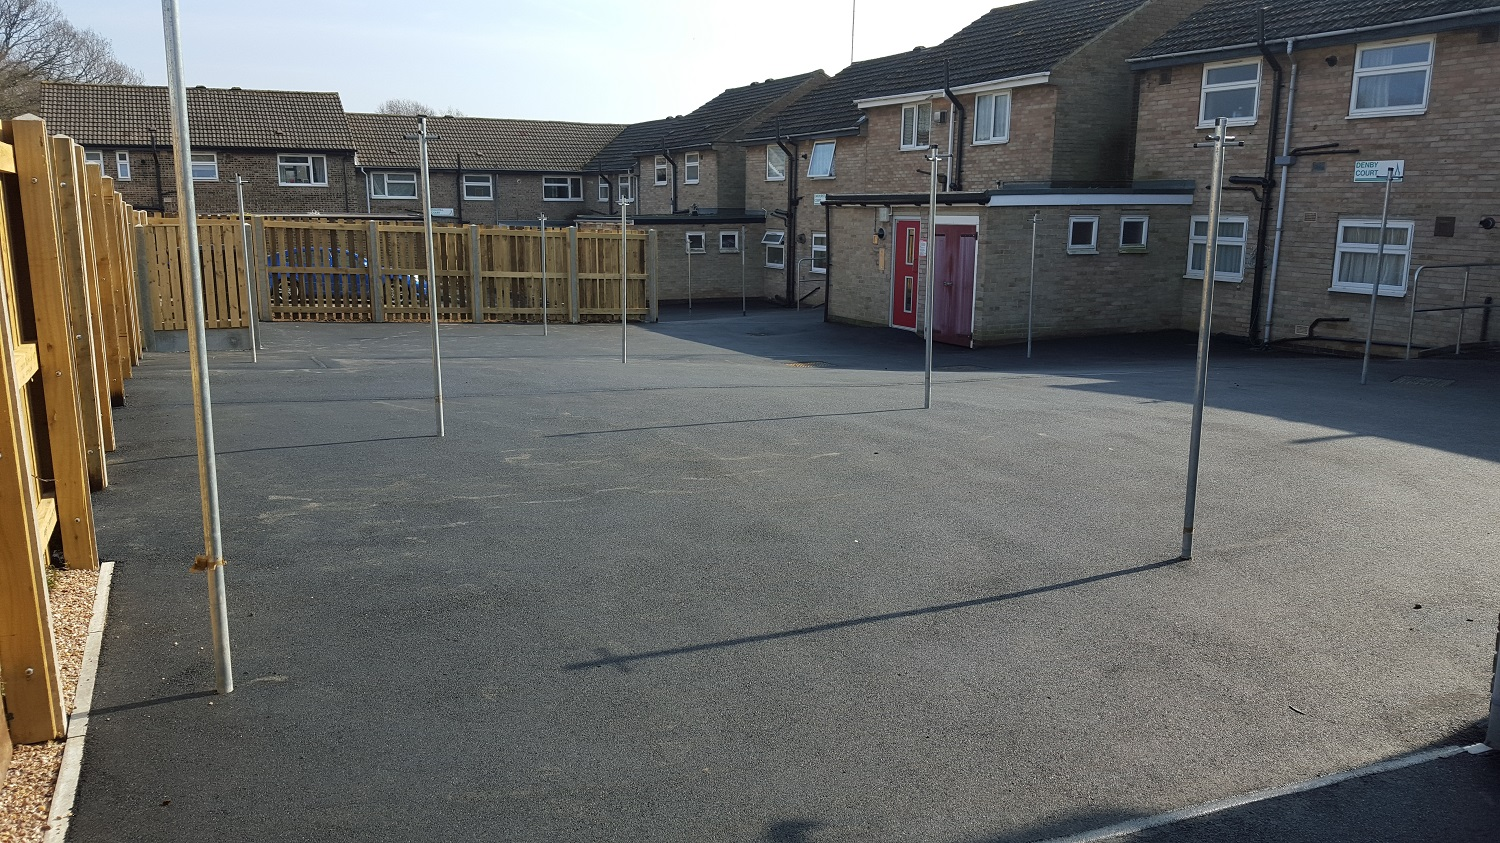 P6 Tarmac Surfacing to Drying Area at Loundsley Green in Chesterfield